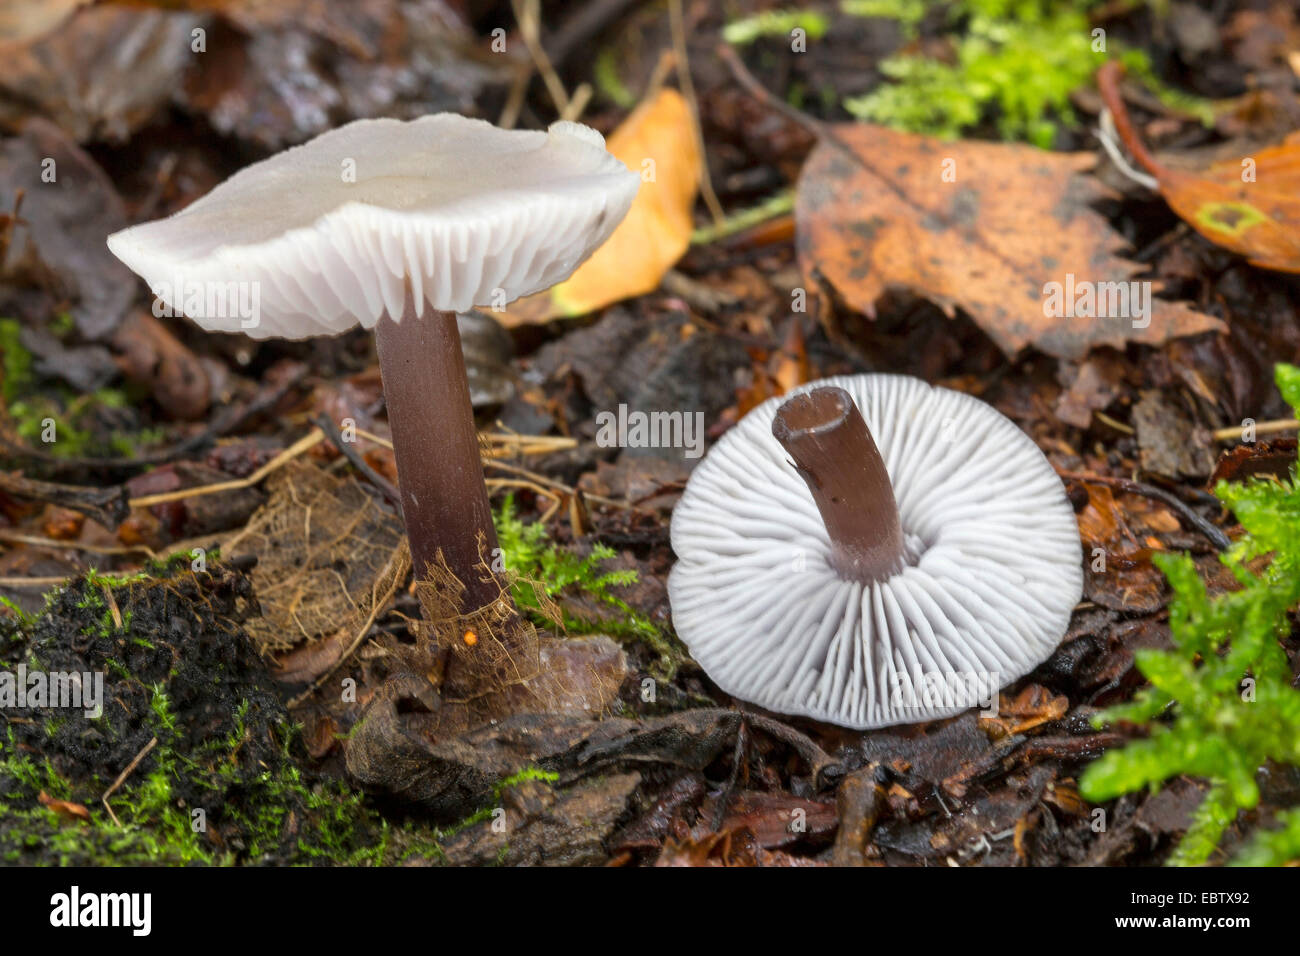 lilac bonnet (Mycena pura, Prunulus purum), two fruiting bodies on forest ground, Germany - Stock Image